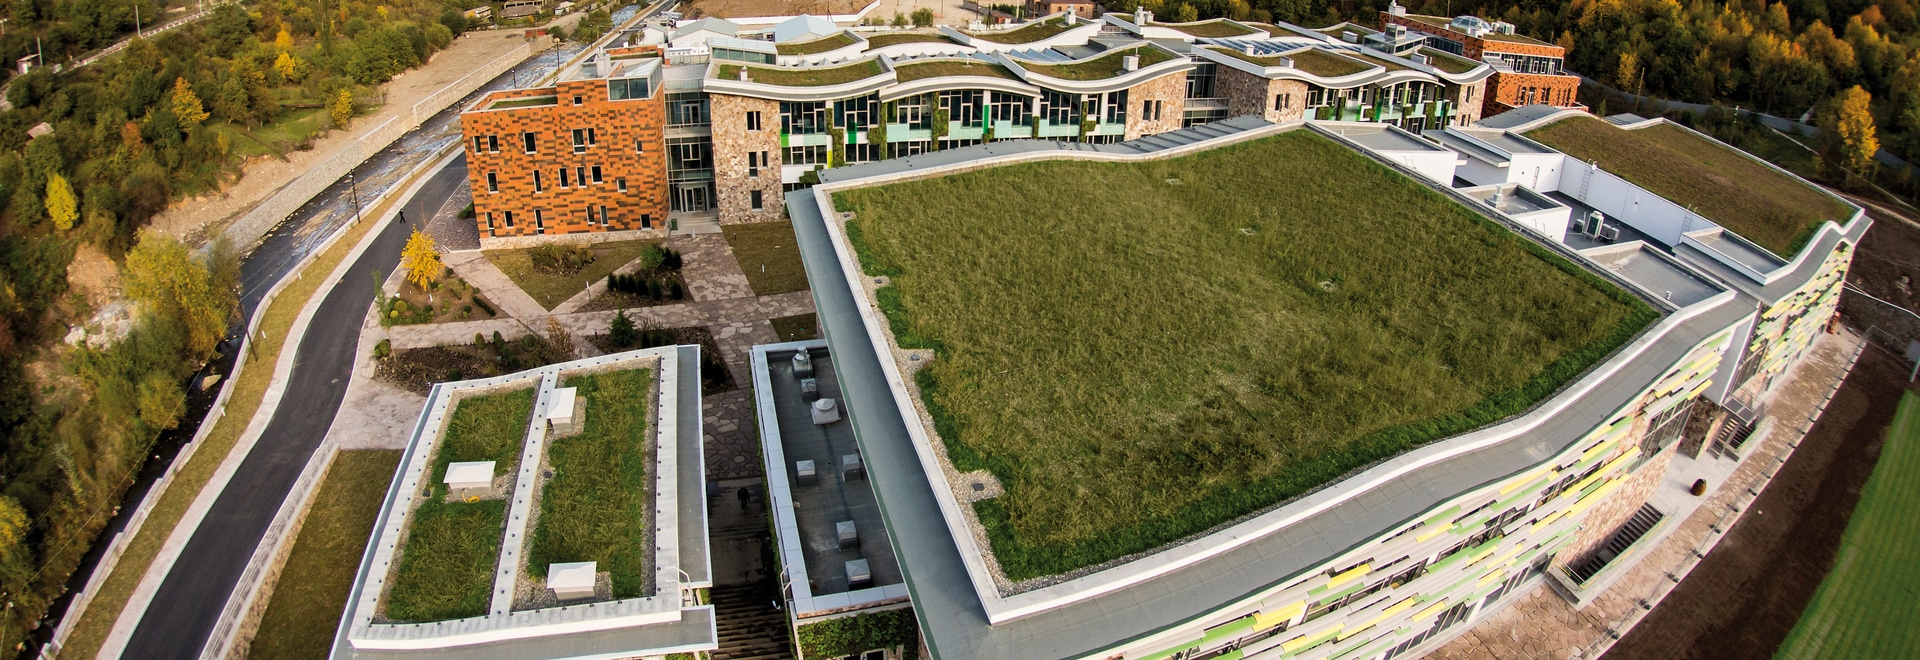 About 7000 m² of green roof ensure that the buildings blend into the surrounding National Park.